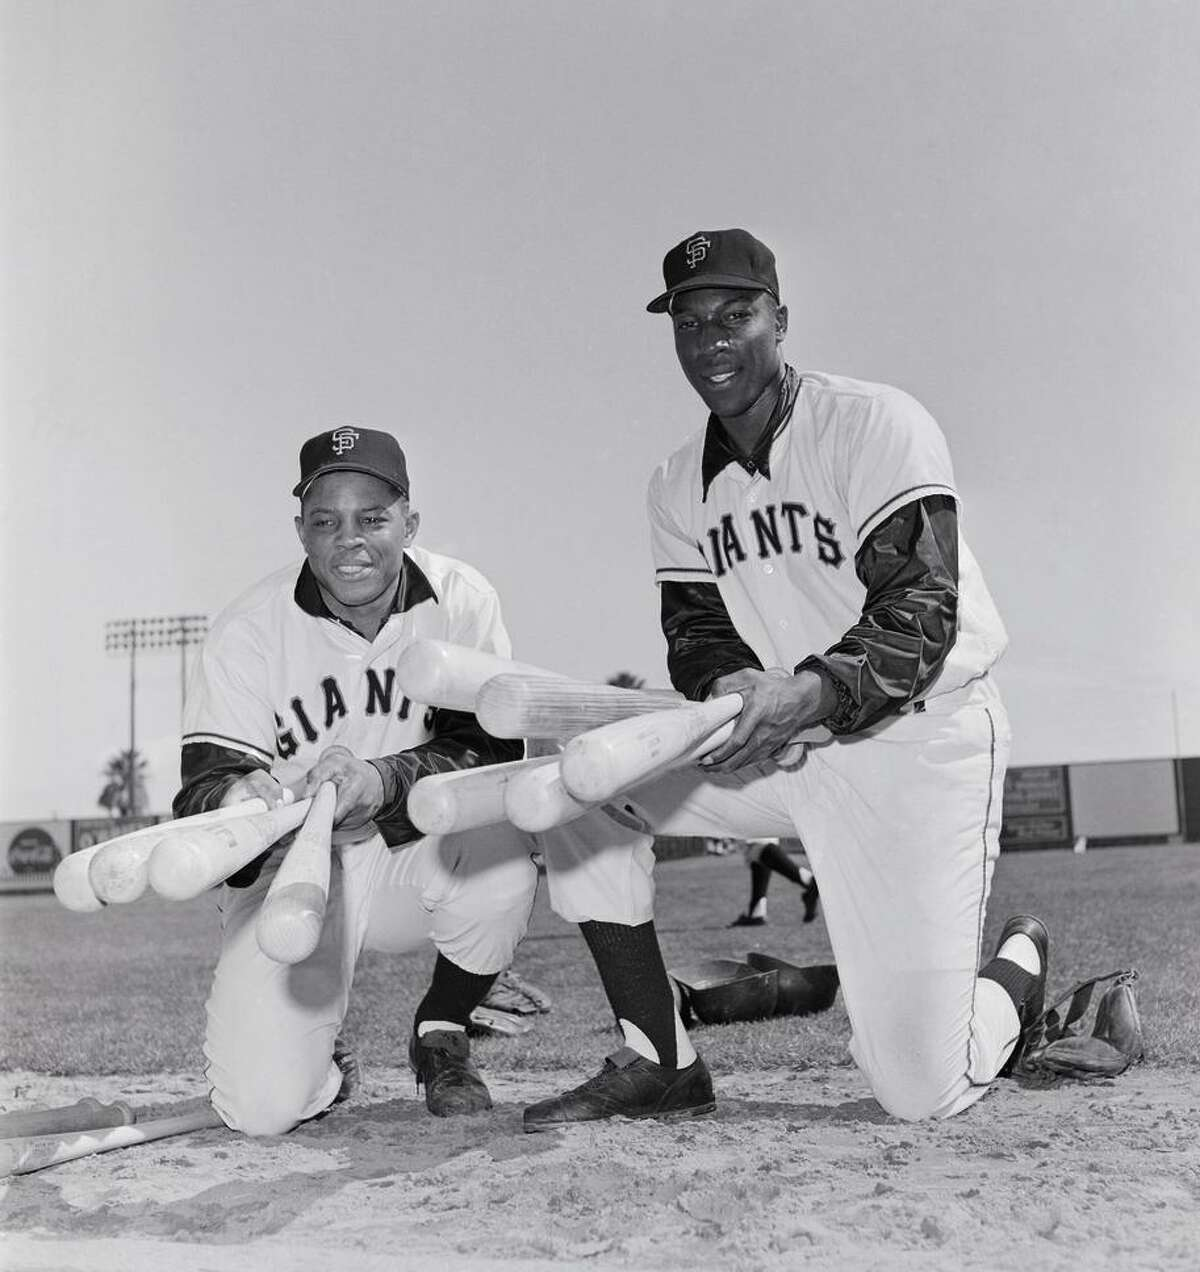 Willie Mays and McCovey in an undated photograph. They led the Giants to five second-place finishes to close the 1960s.